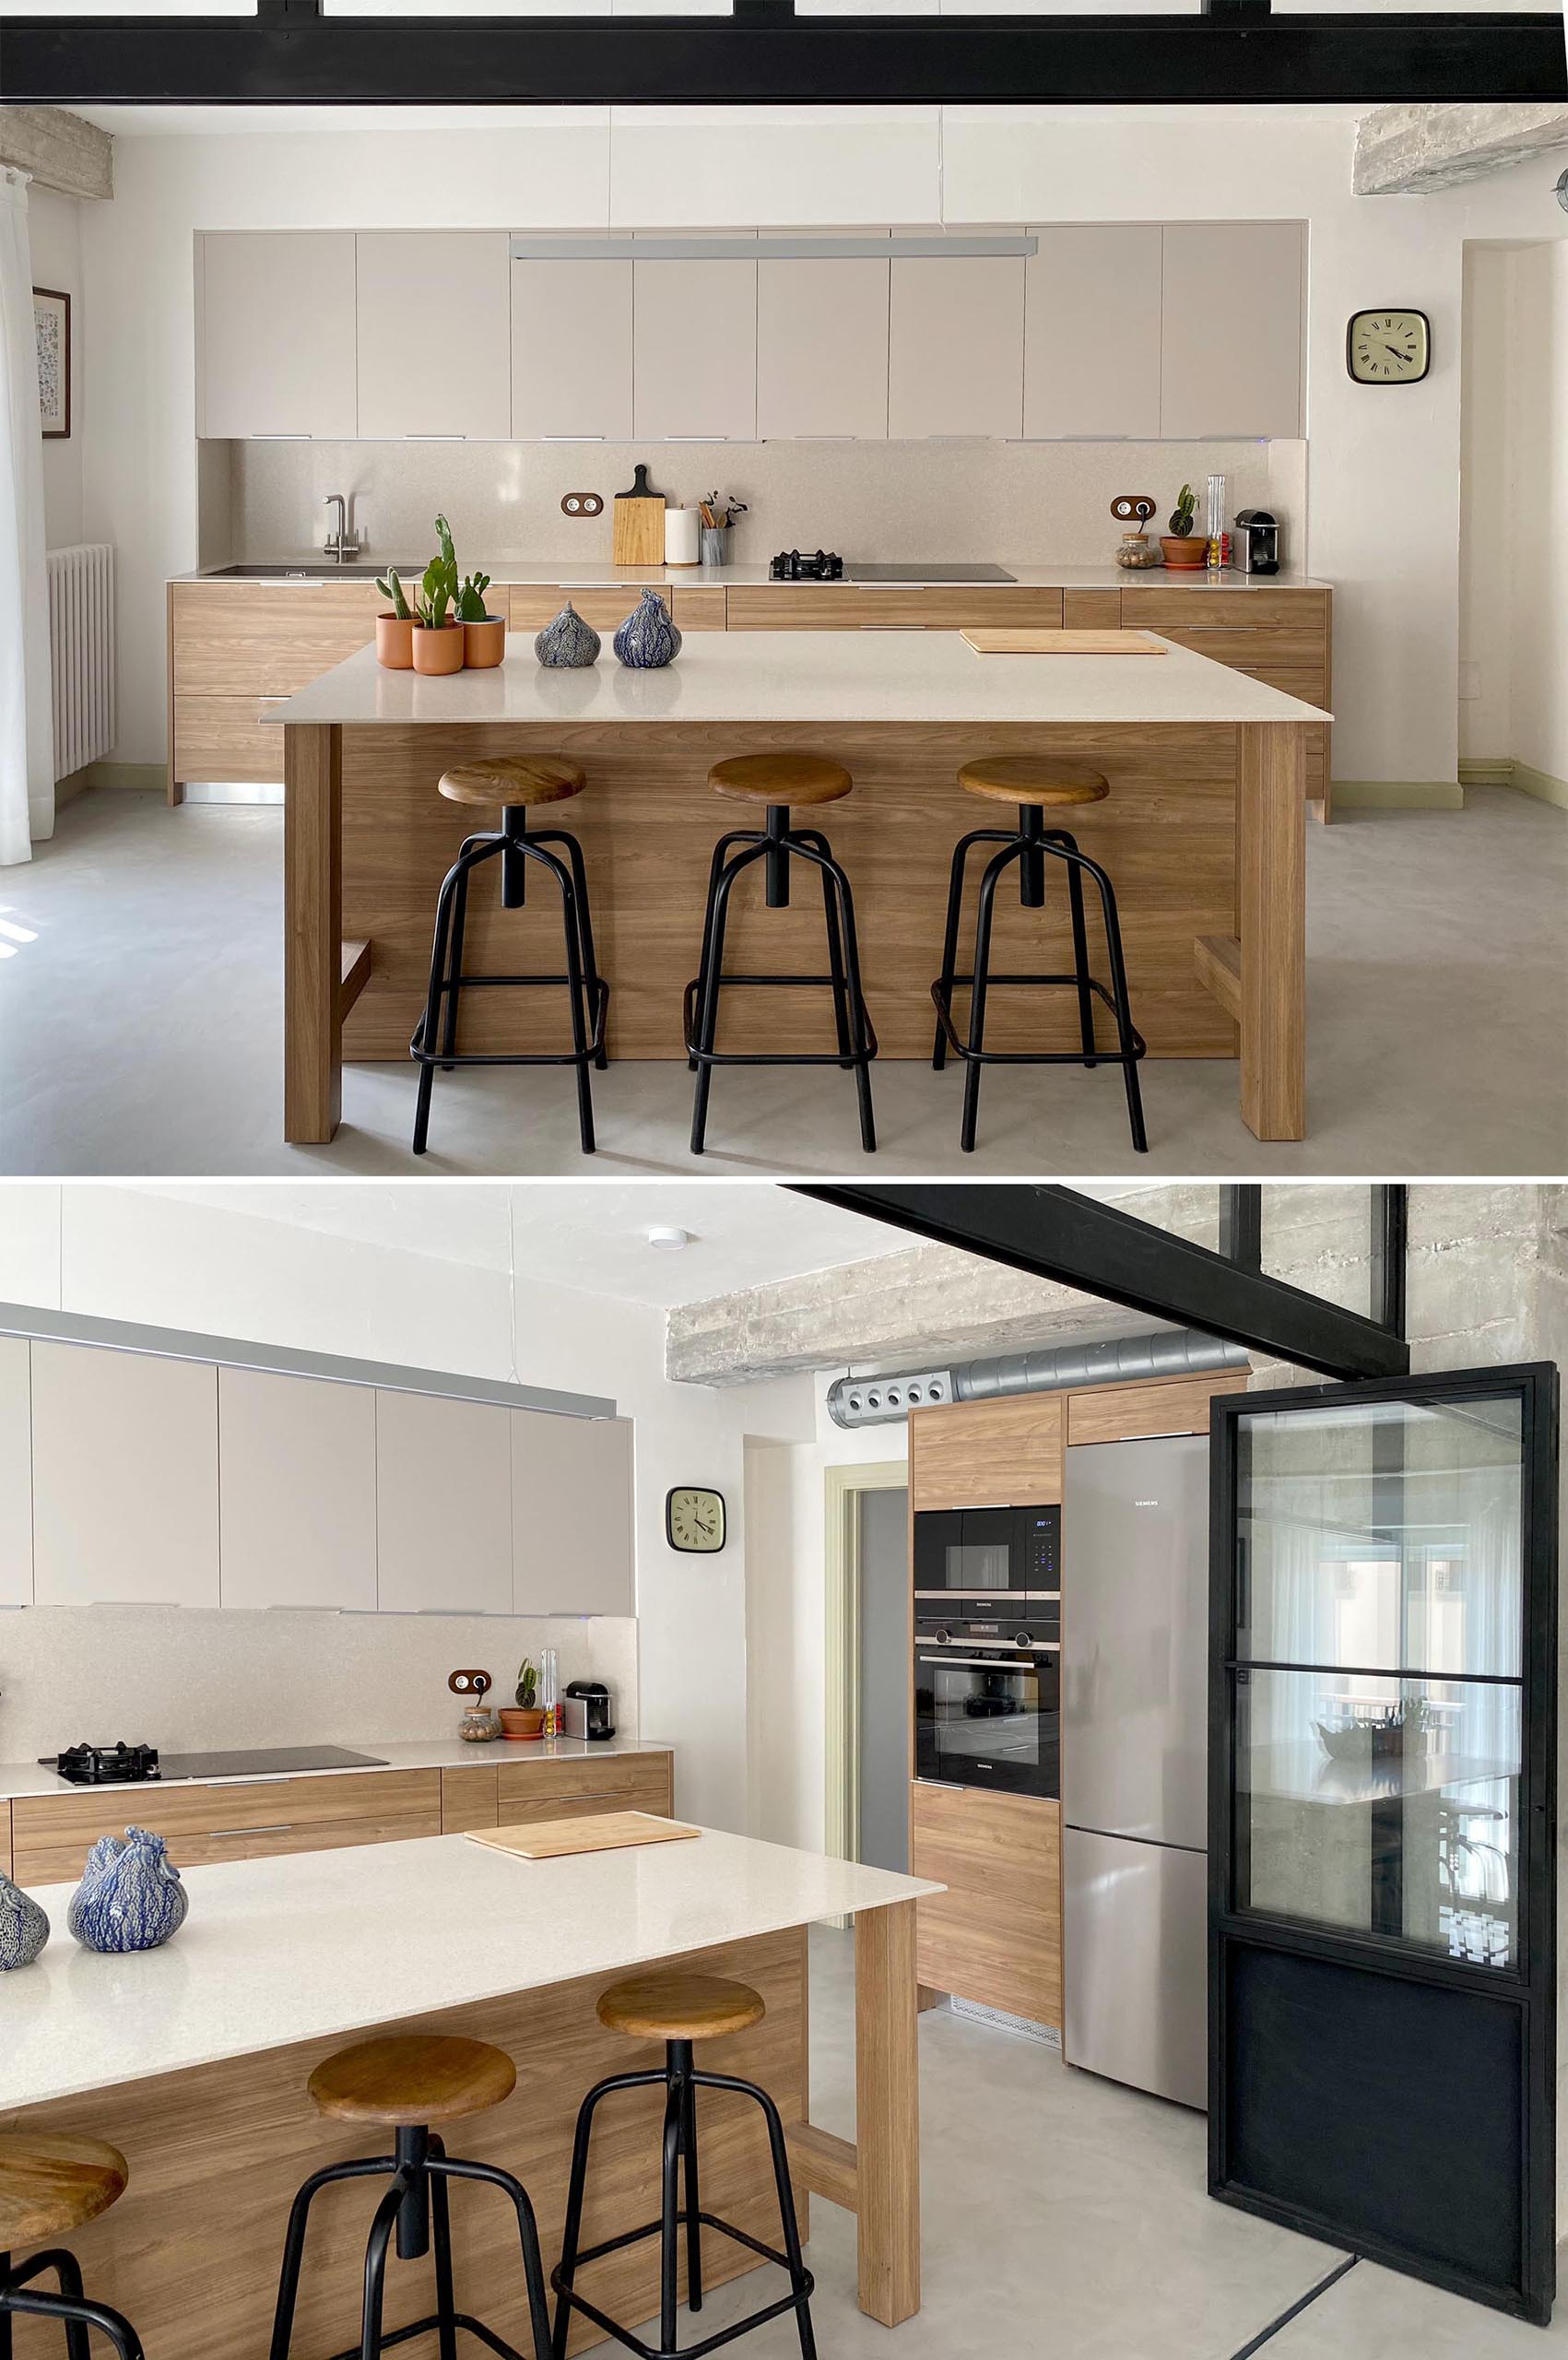 The black framed wall also complements the black stools of the kitchen island, while the kitchen cabinets have a minimalist design.